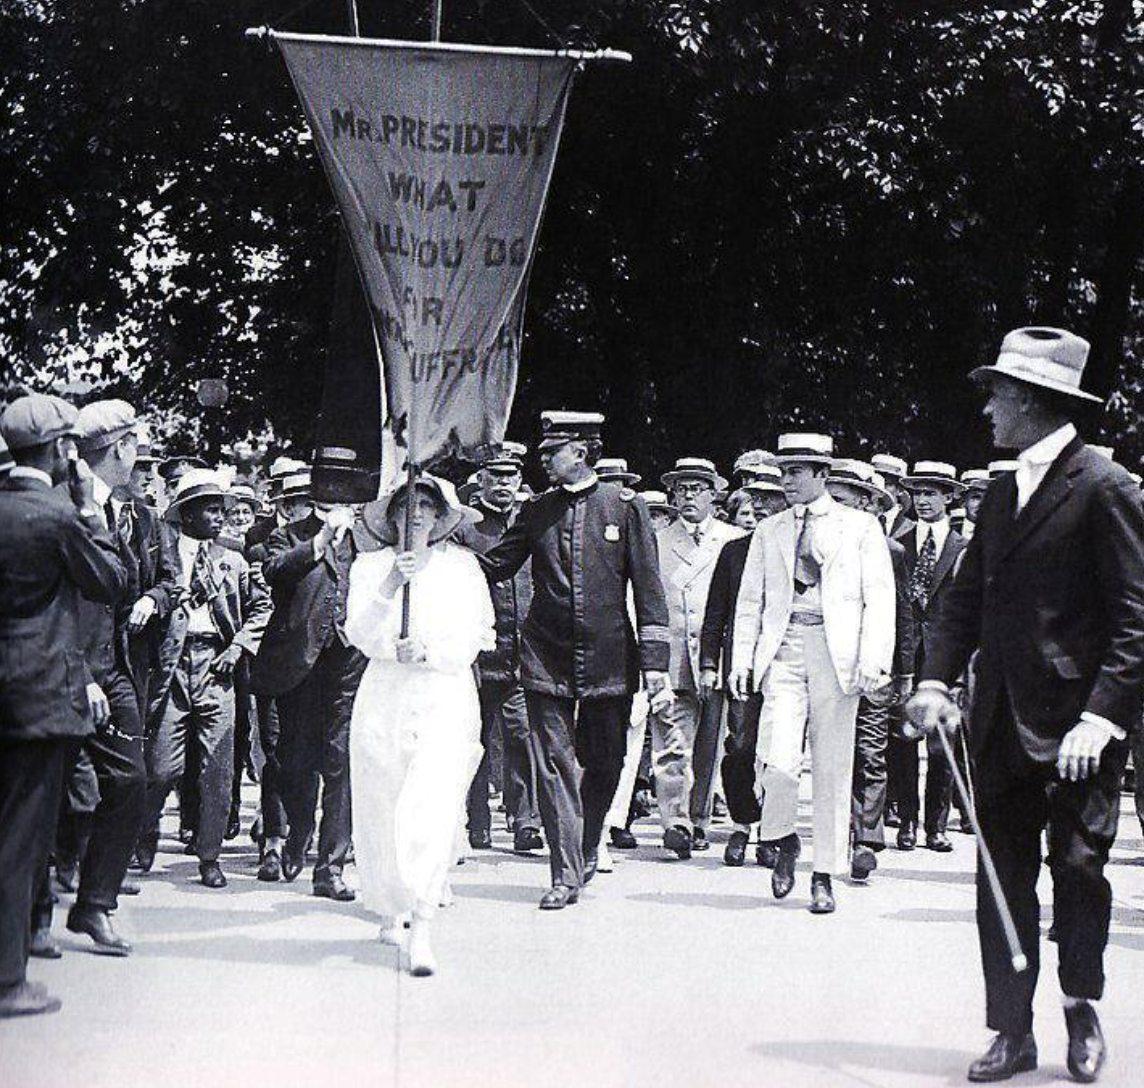 """Today in Feminist History: The """"Silent Sentinel"""" Suffragists Imprisoned (June 27, 1917)"""